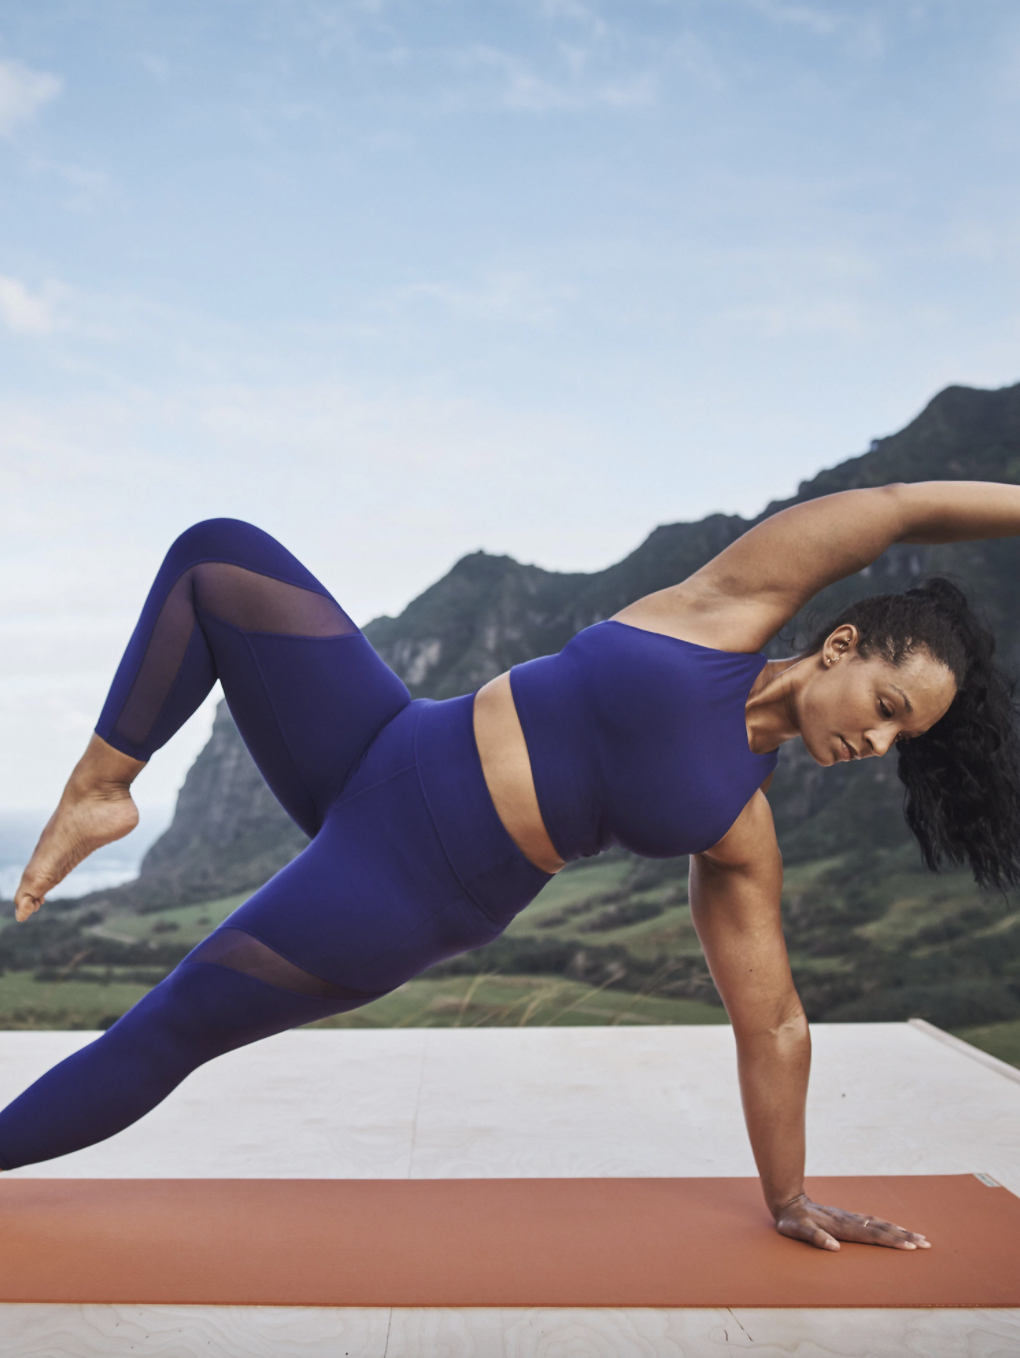 A model wearing the leggings while doing yoga poses